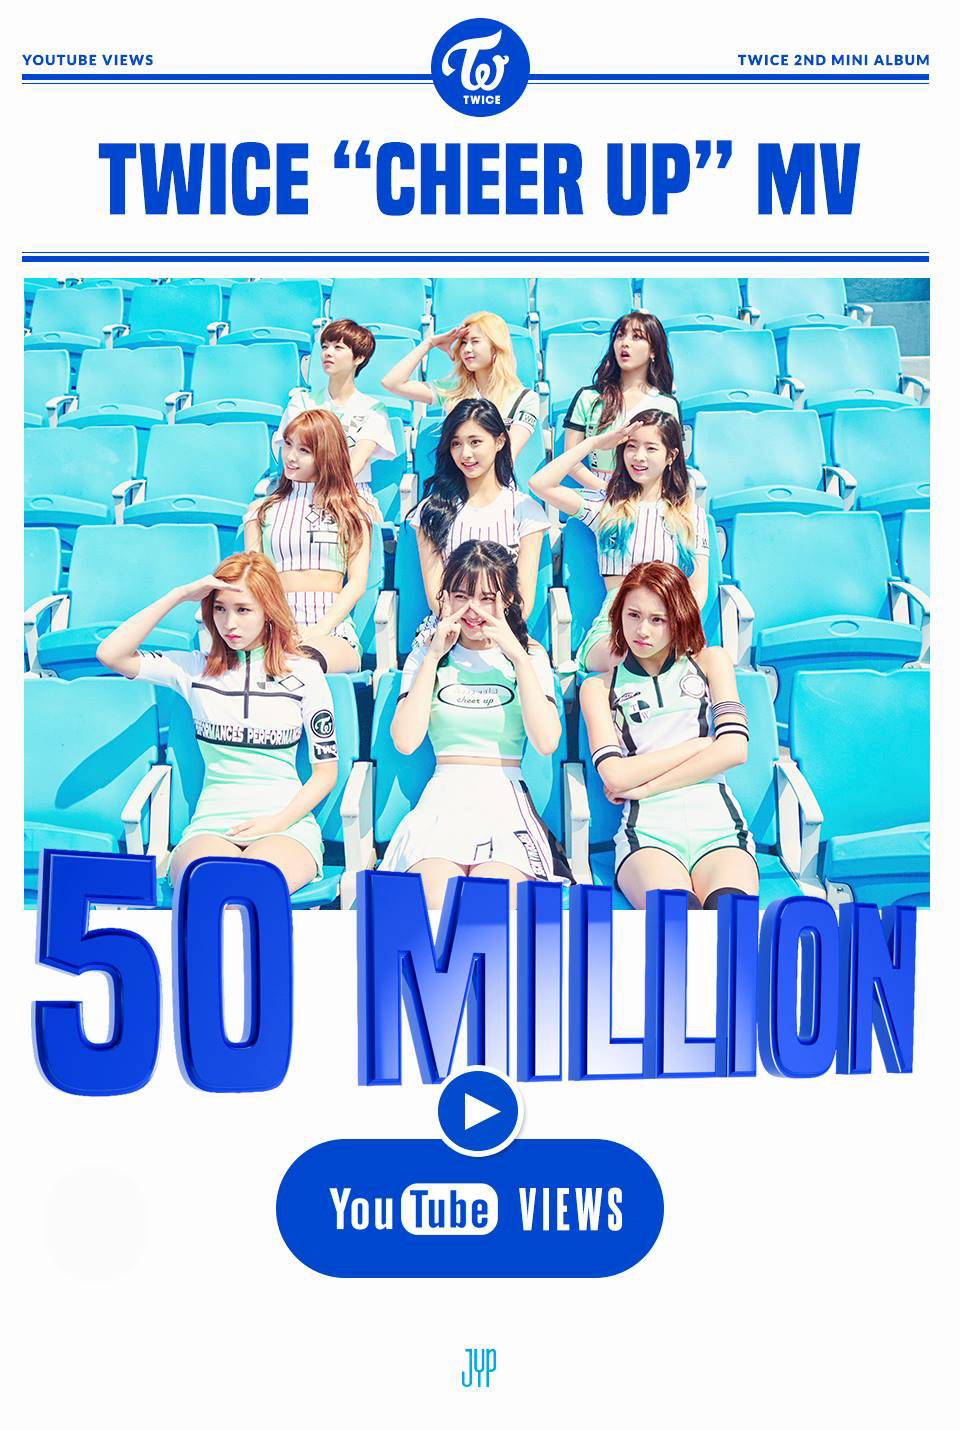 TWICE Cheer Up 50M views photo.png